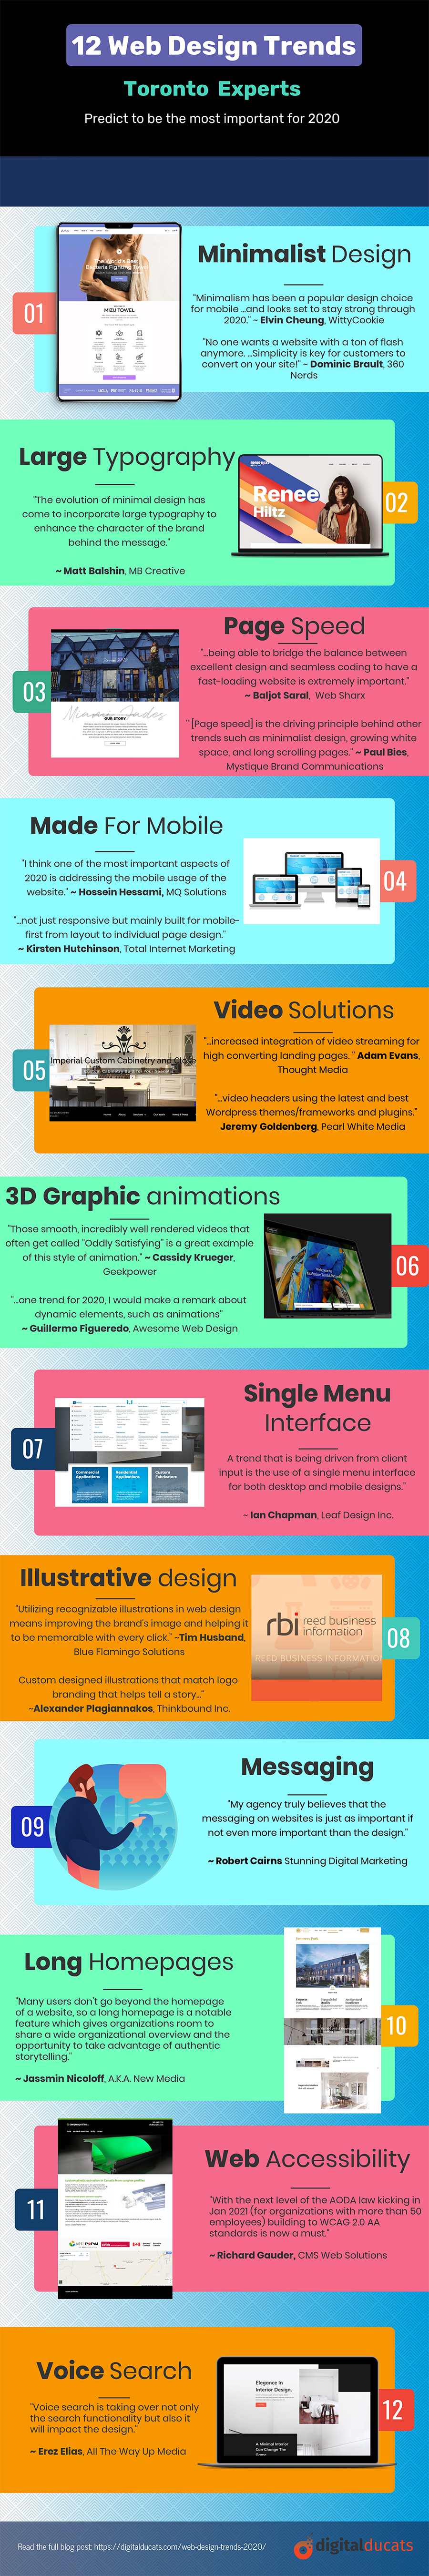 Infographic on 12 web design trends For 2020 that Toronto web design experts predict will be prevalent throughout the year